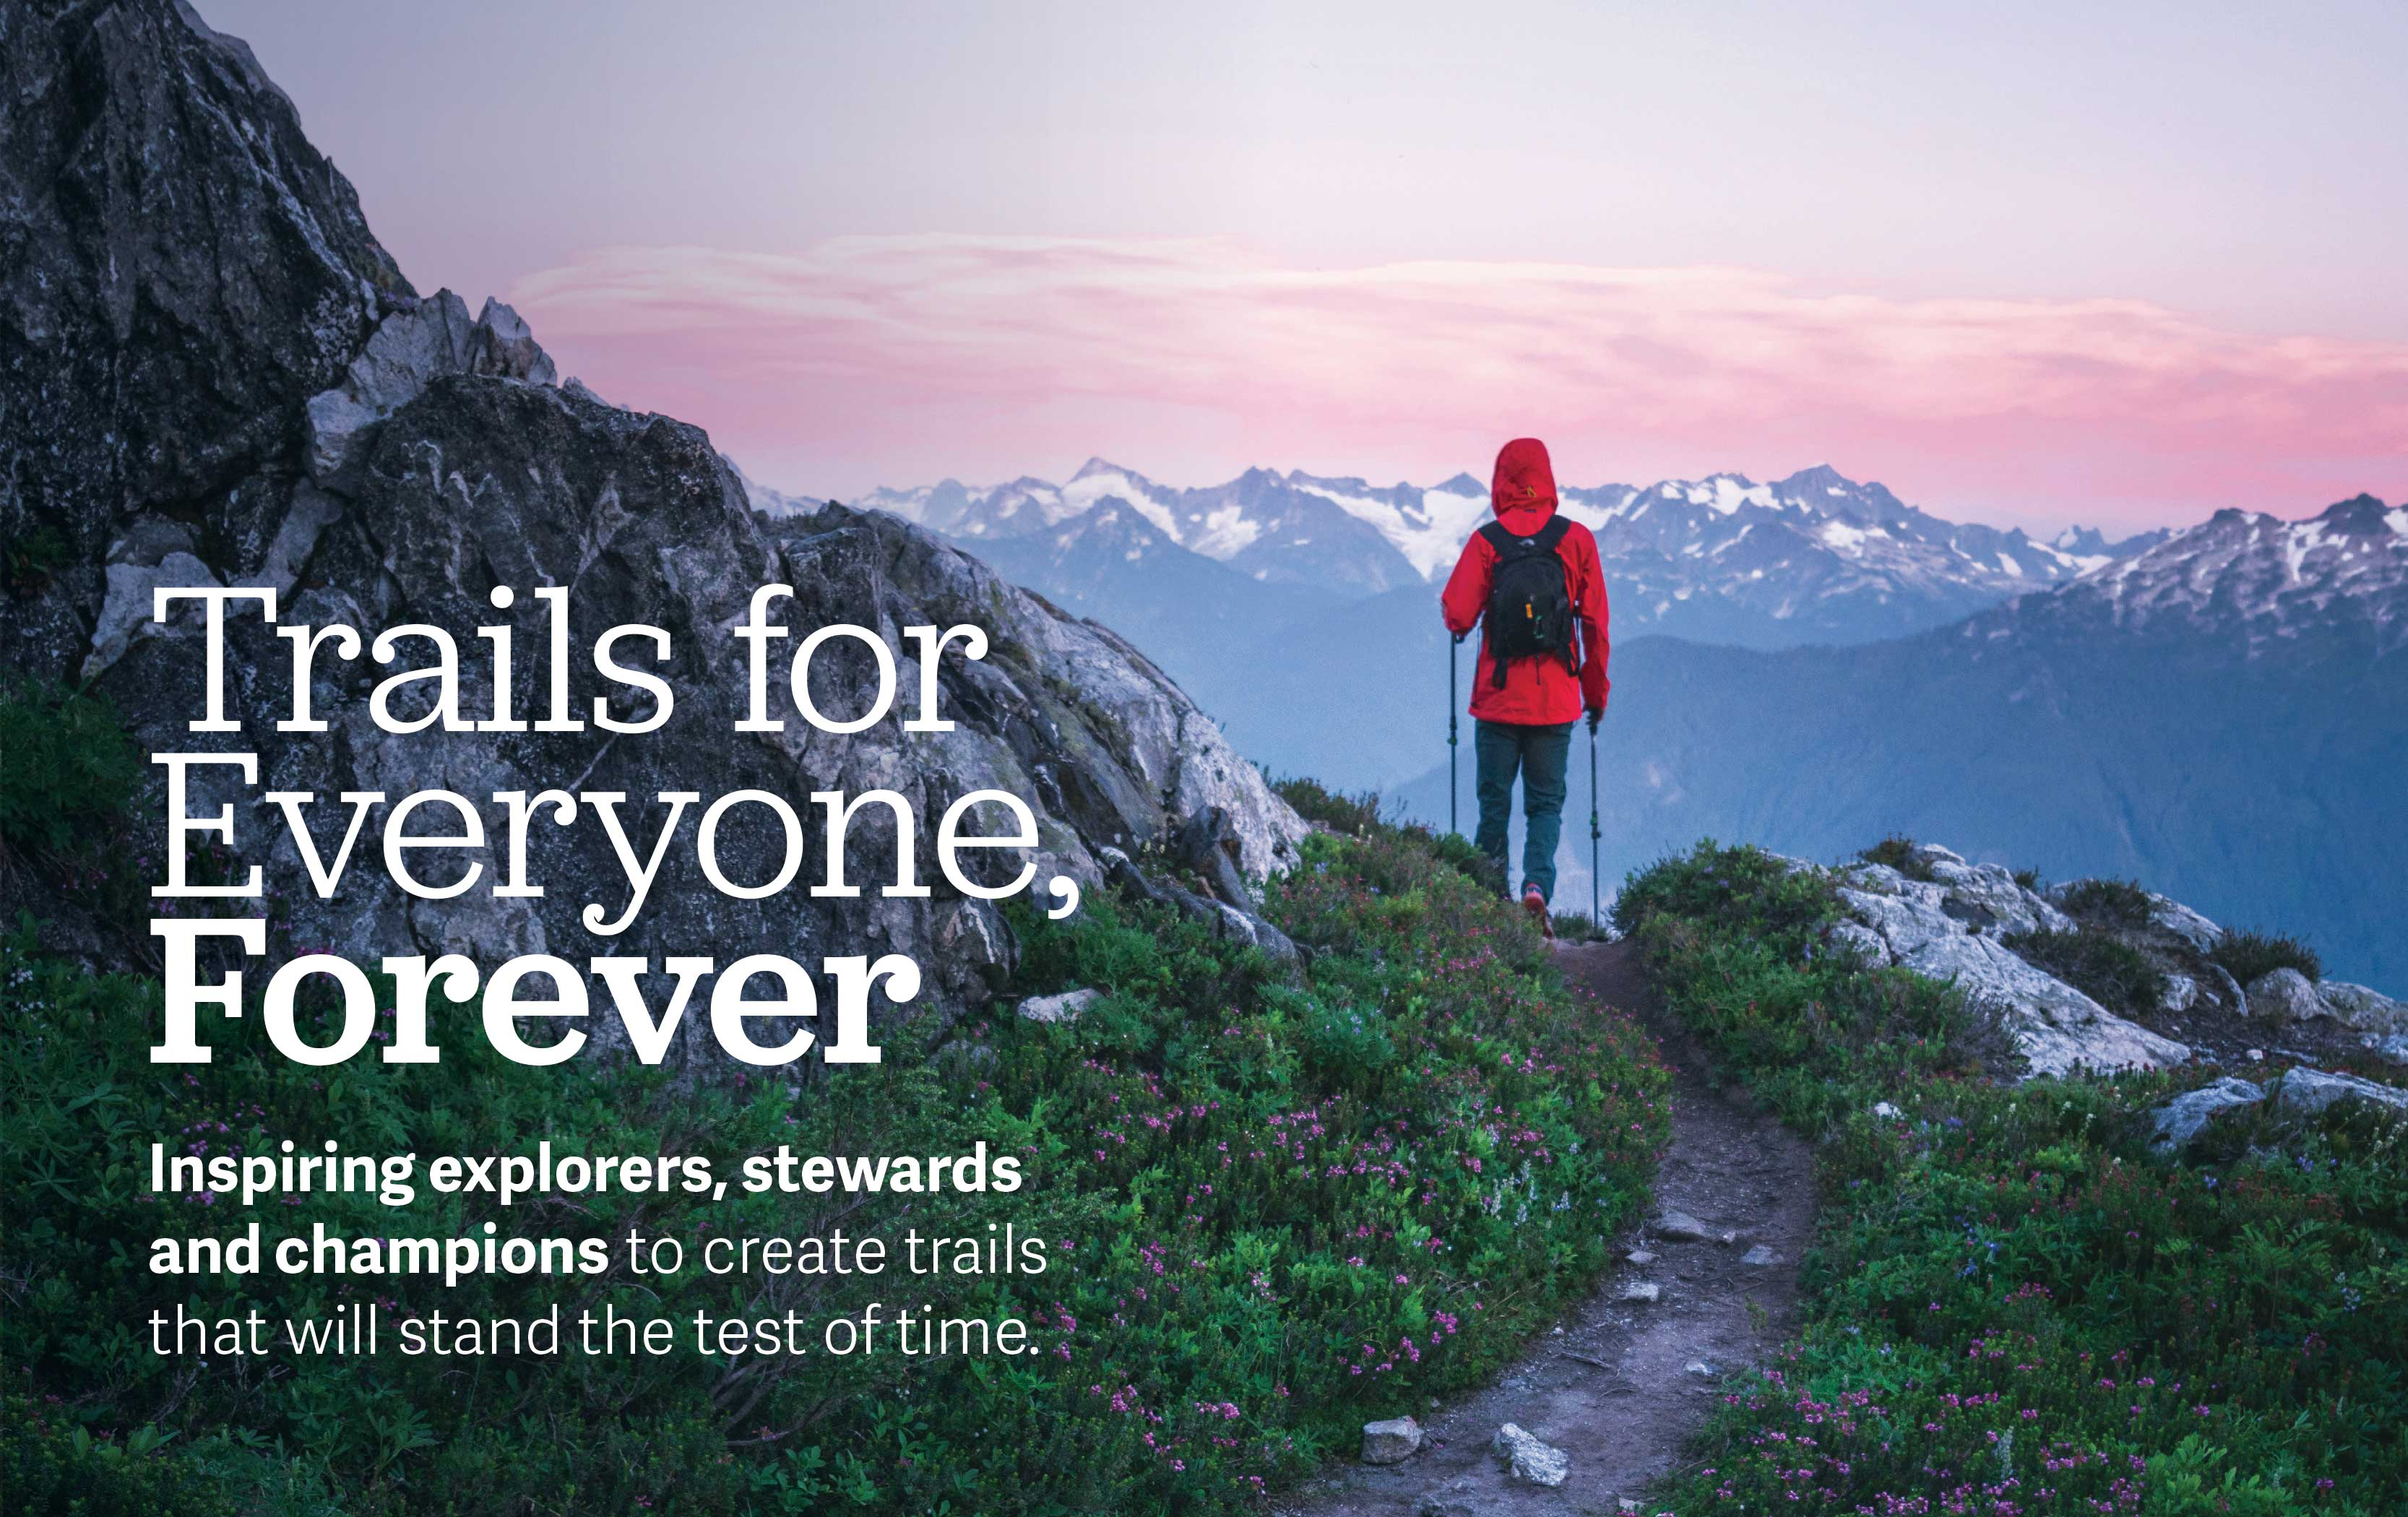 trails for everyone, forever